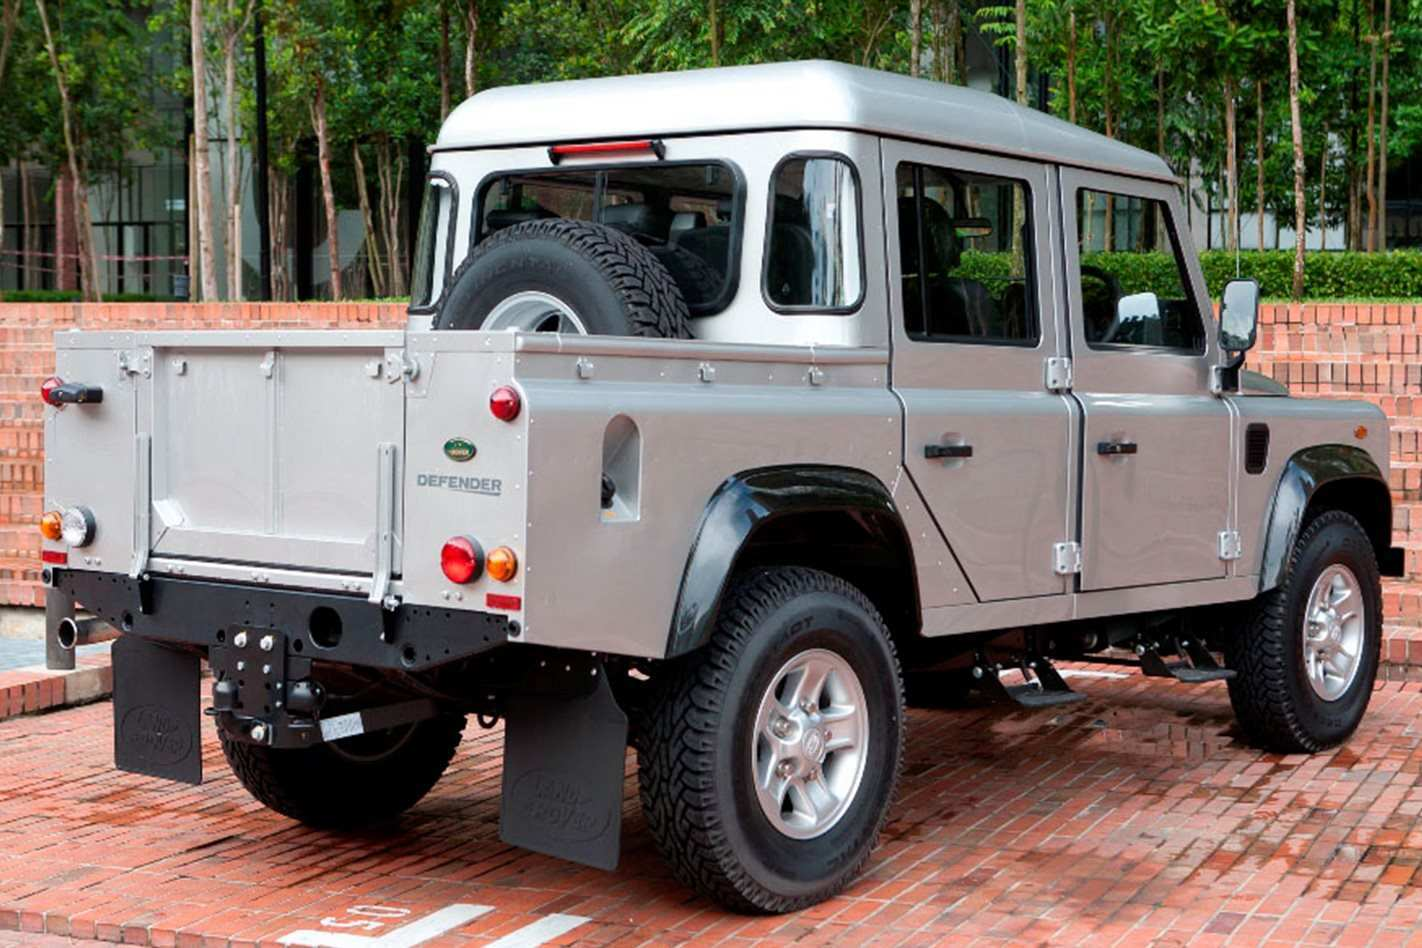 72 Best Review 2019 Land Rover Defender Ute Photos for 2019 Land Rover Defender Ute